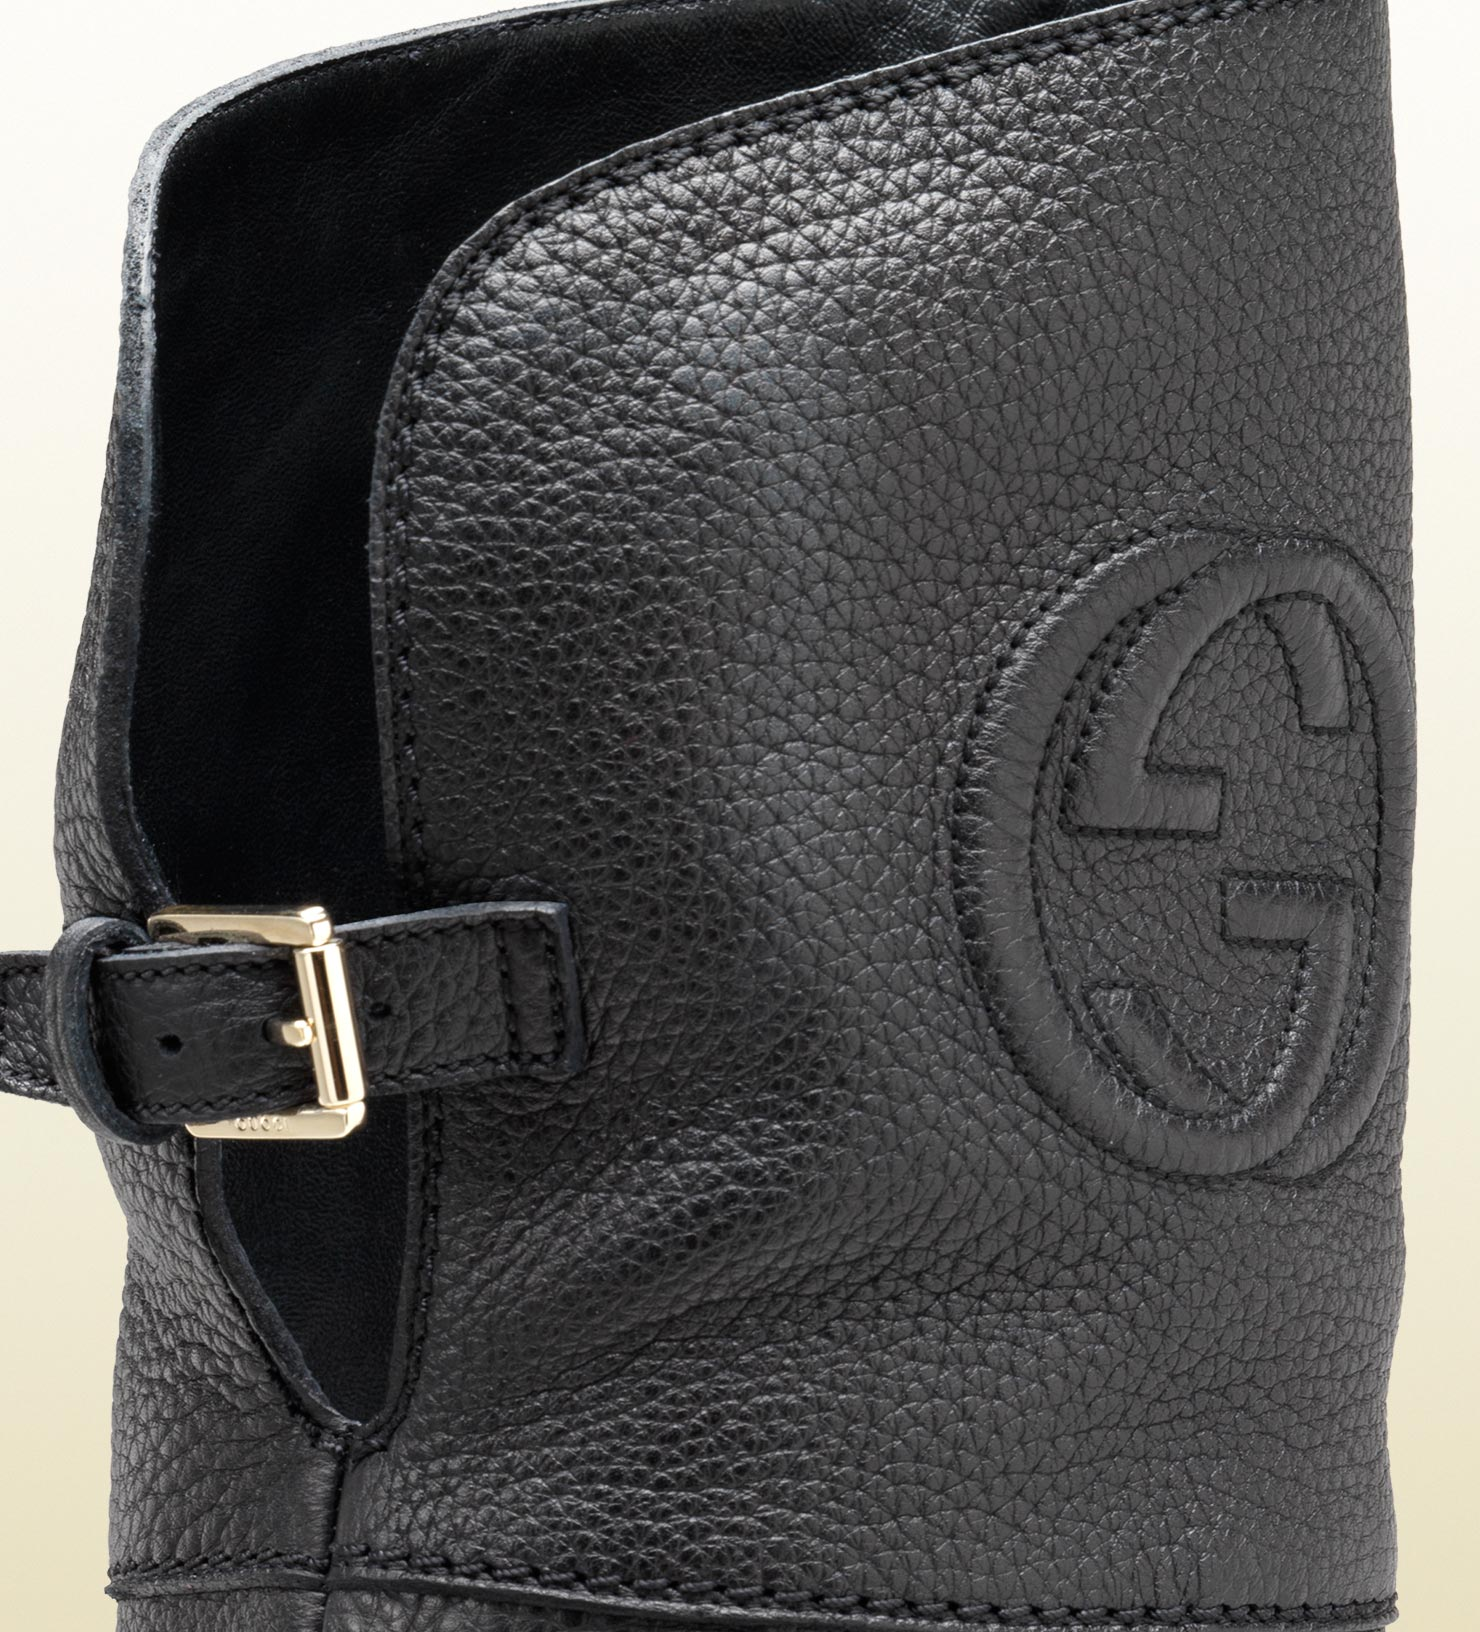 e30399b163f9 Lyst - Gucci Over-the-knee Embossed Interlocking G Low Heel Boot in ...